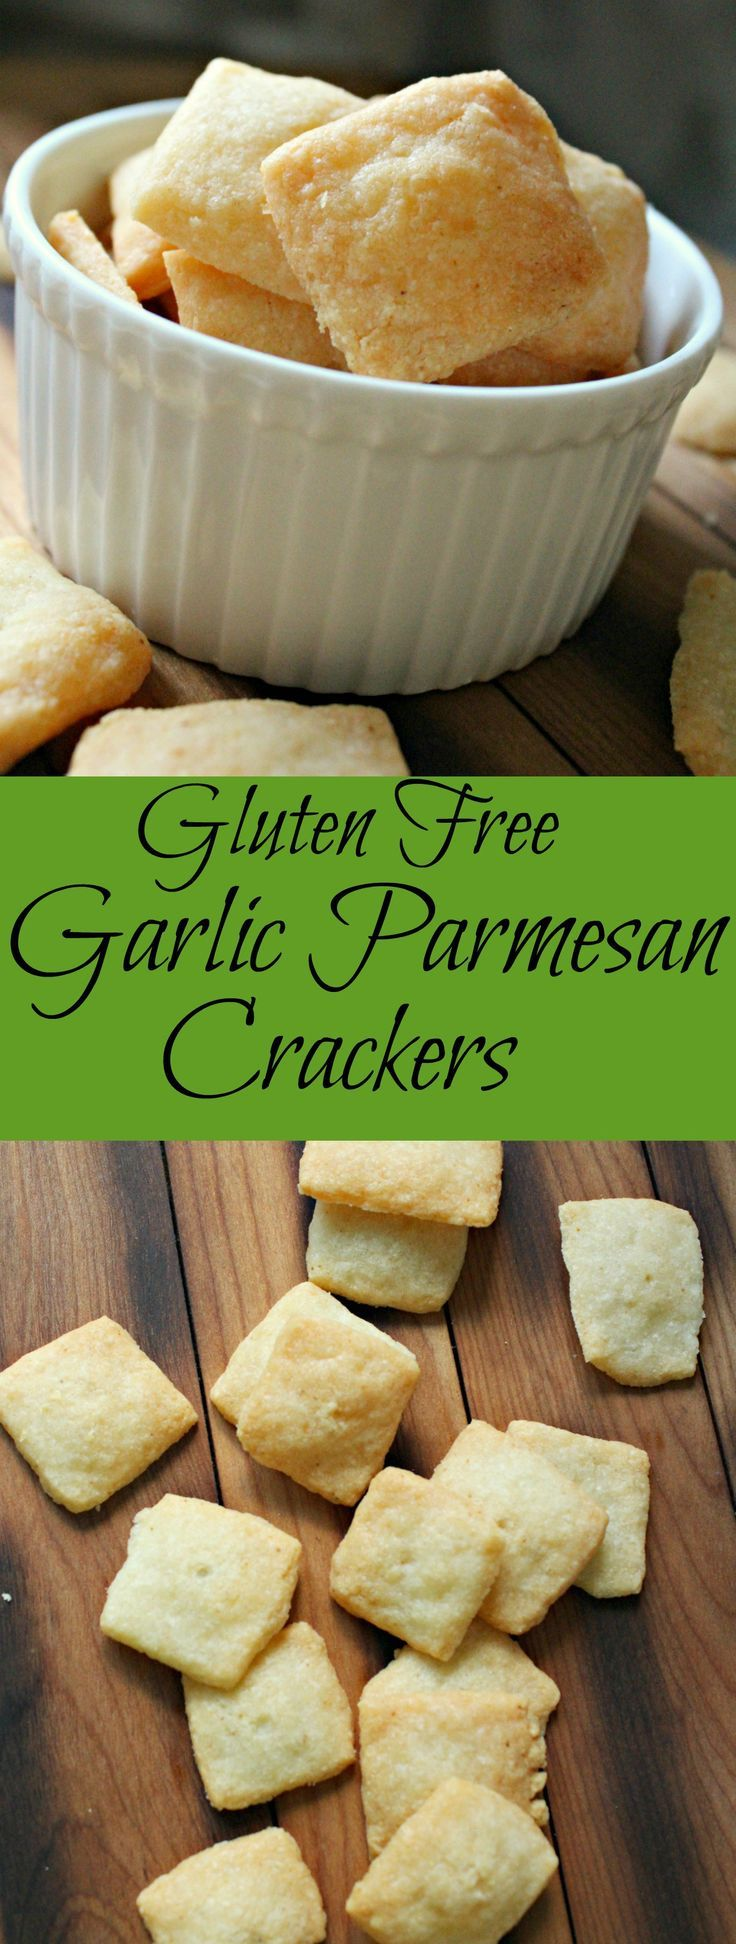 Gluten Free Garlic Parmesan Crackers. So similar to Cheez-its but made at home and so delicious! Perfect soup cracker or snack for sure! | gluten free | cheez it recipe | gluten free crackers | cheese crackers | simple gluten free recipes | snacks| garlic